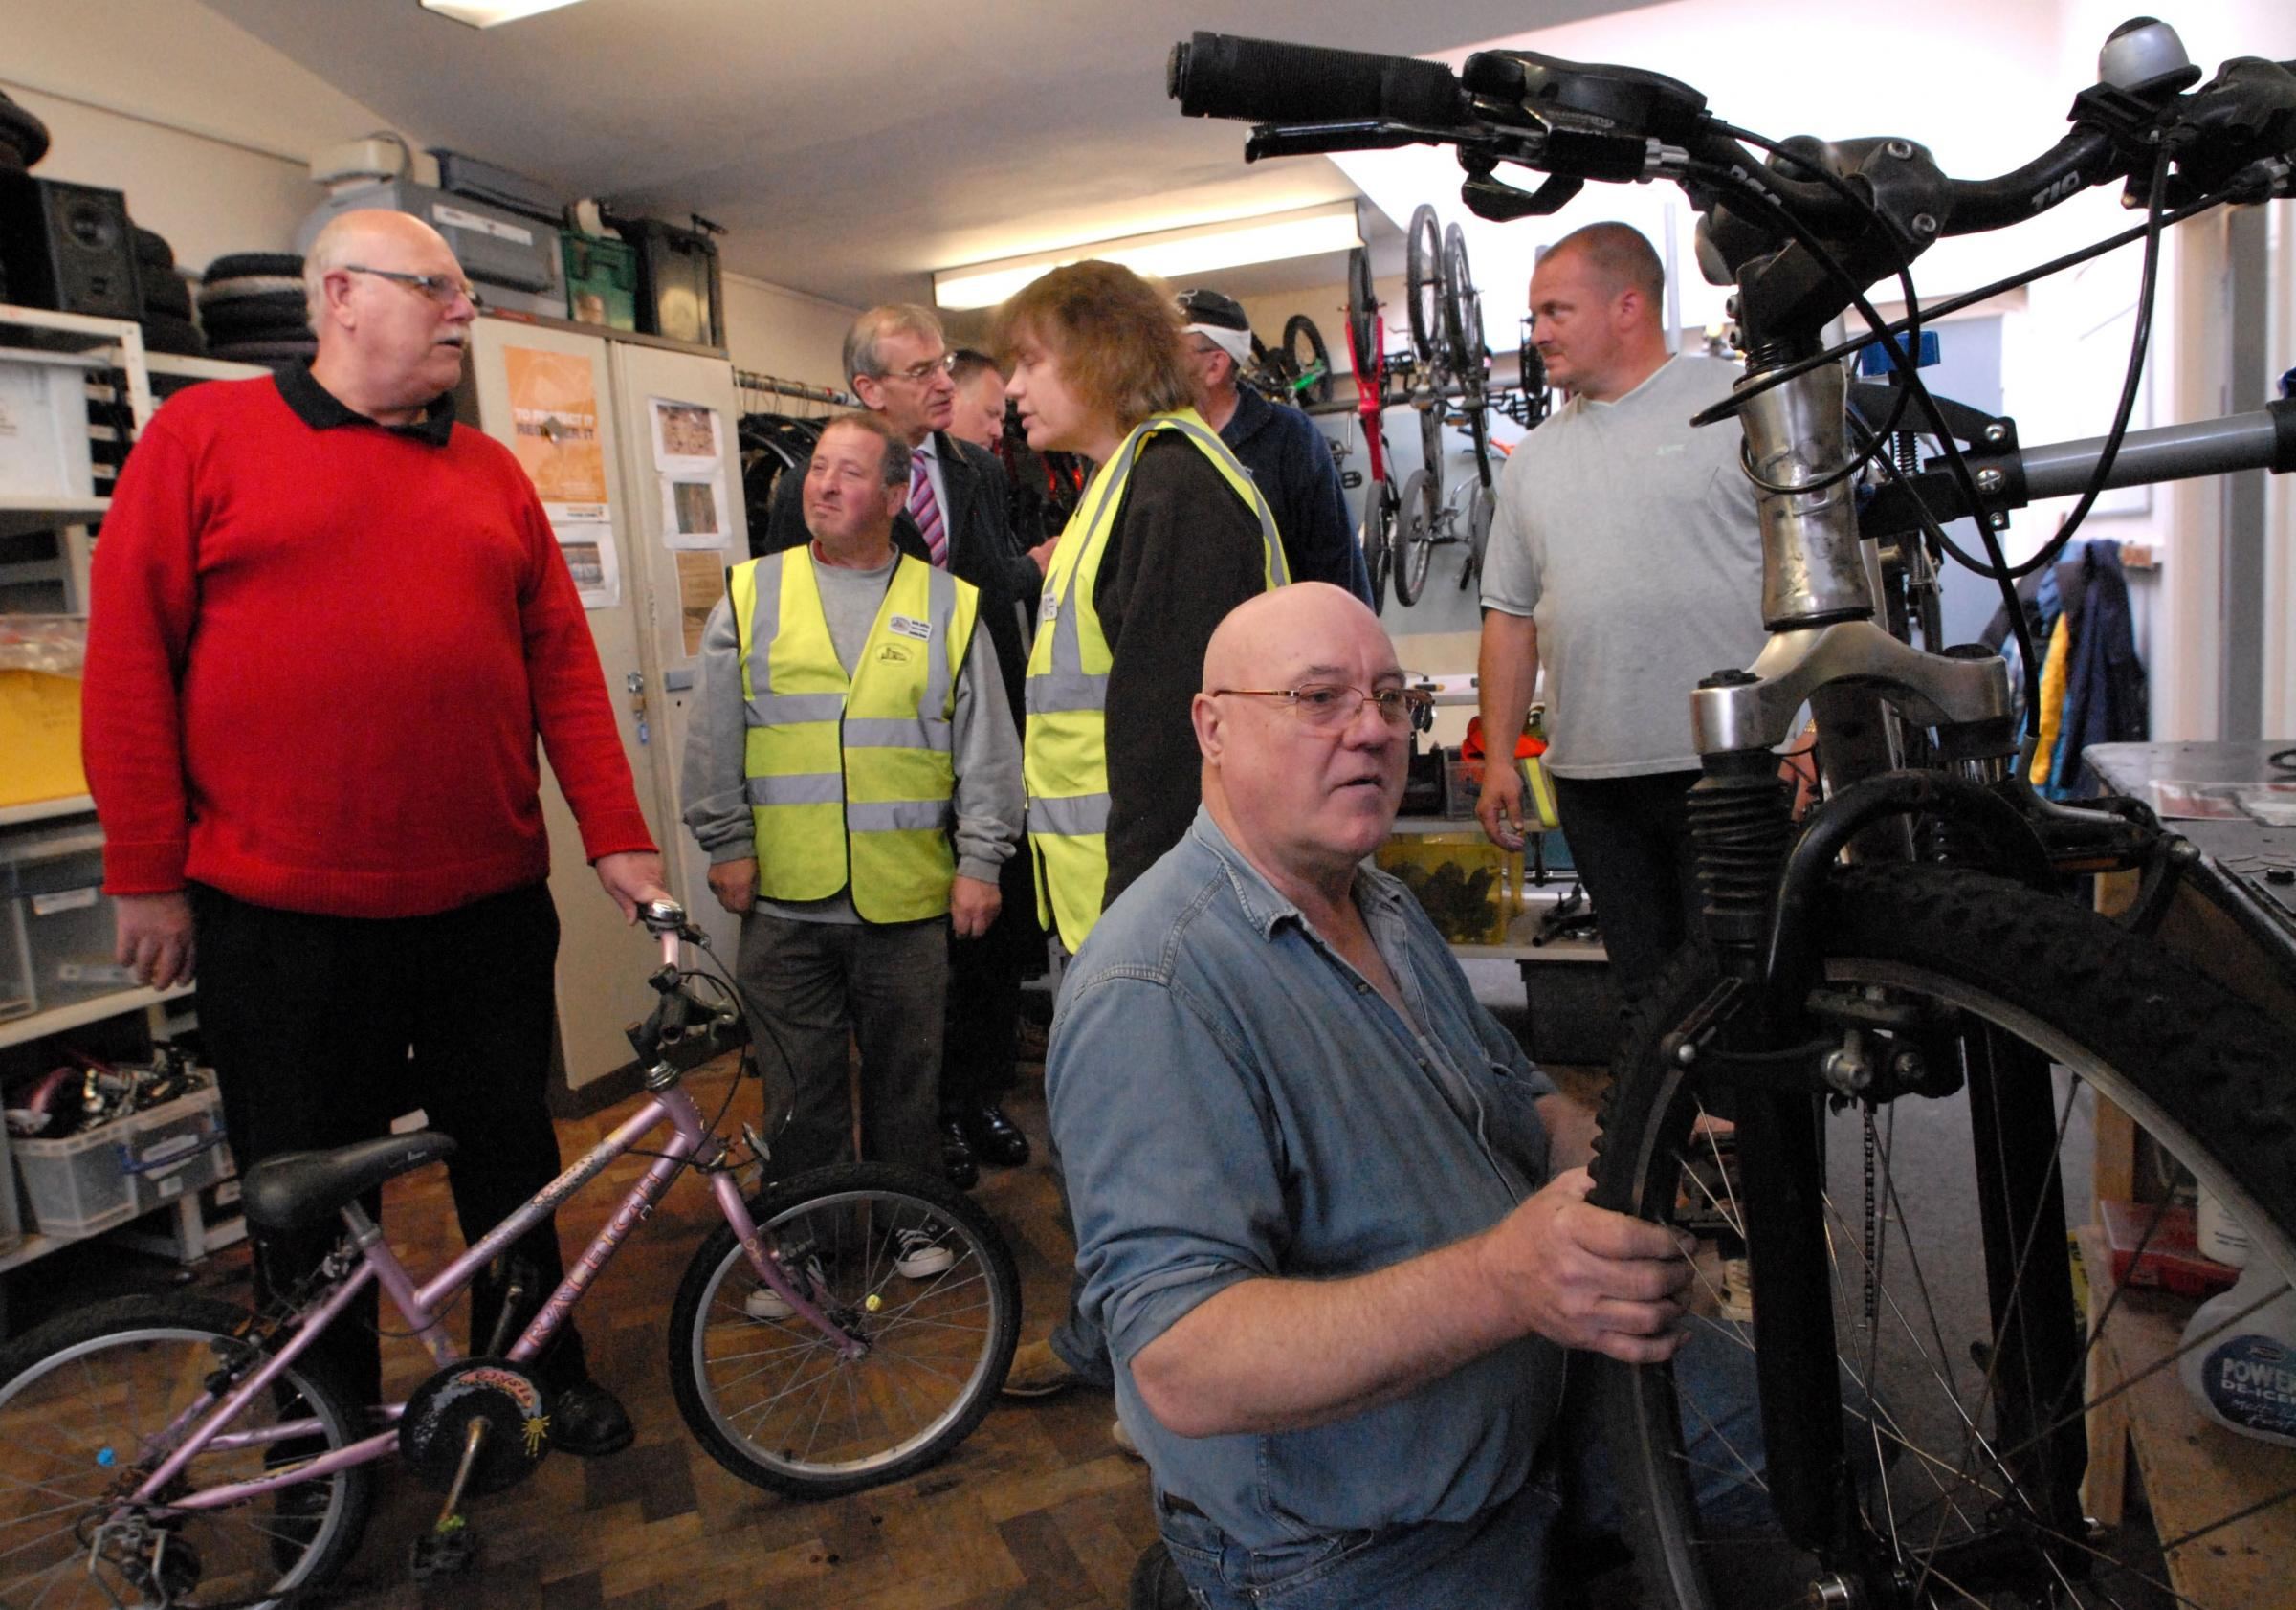 Visitors at City Can Cycle's recent open day saw volunteers working